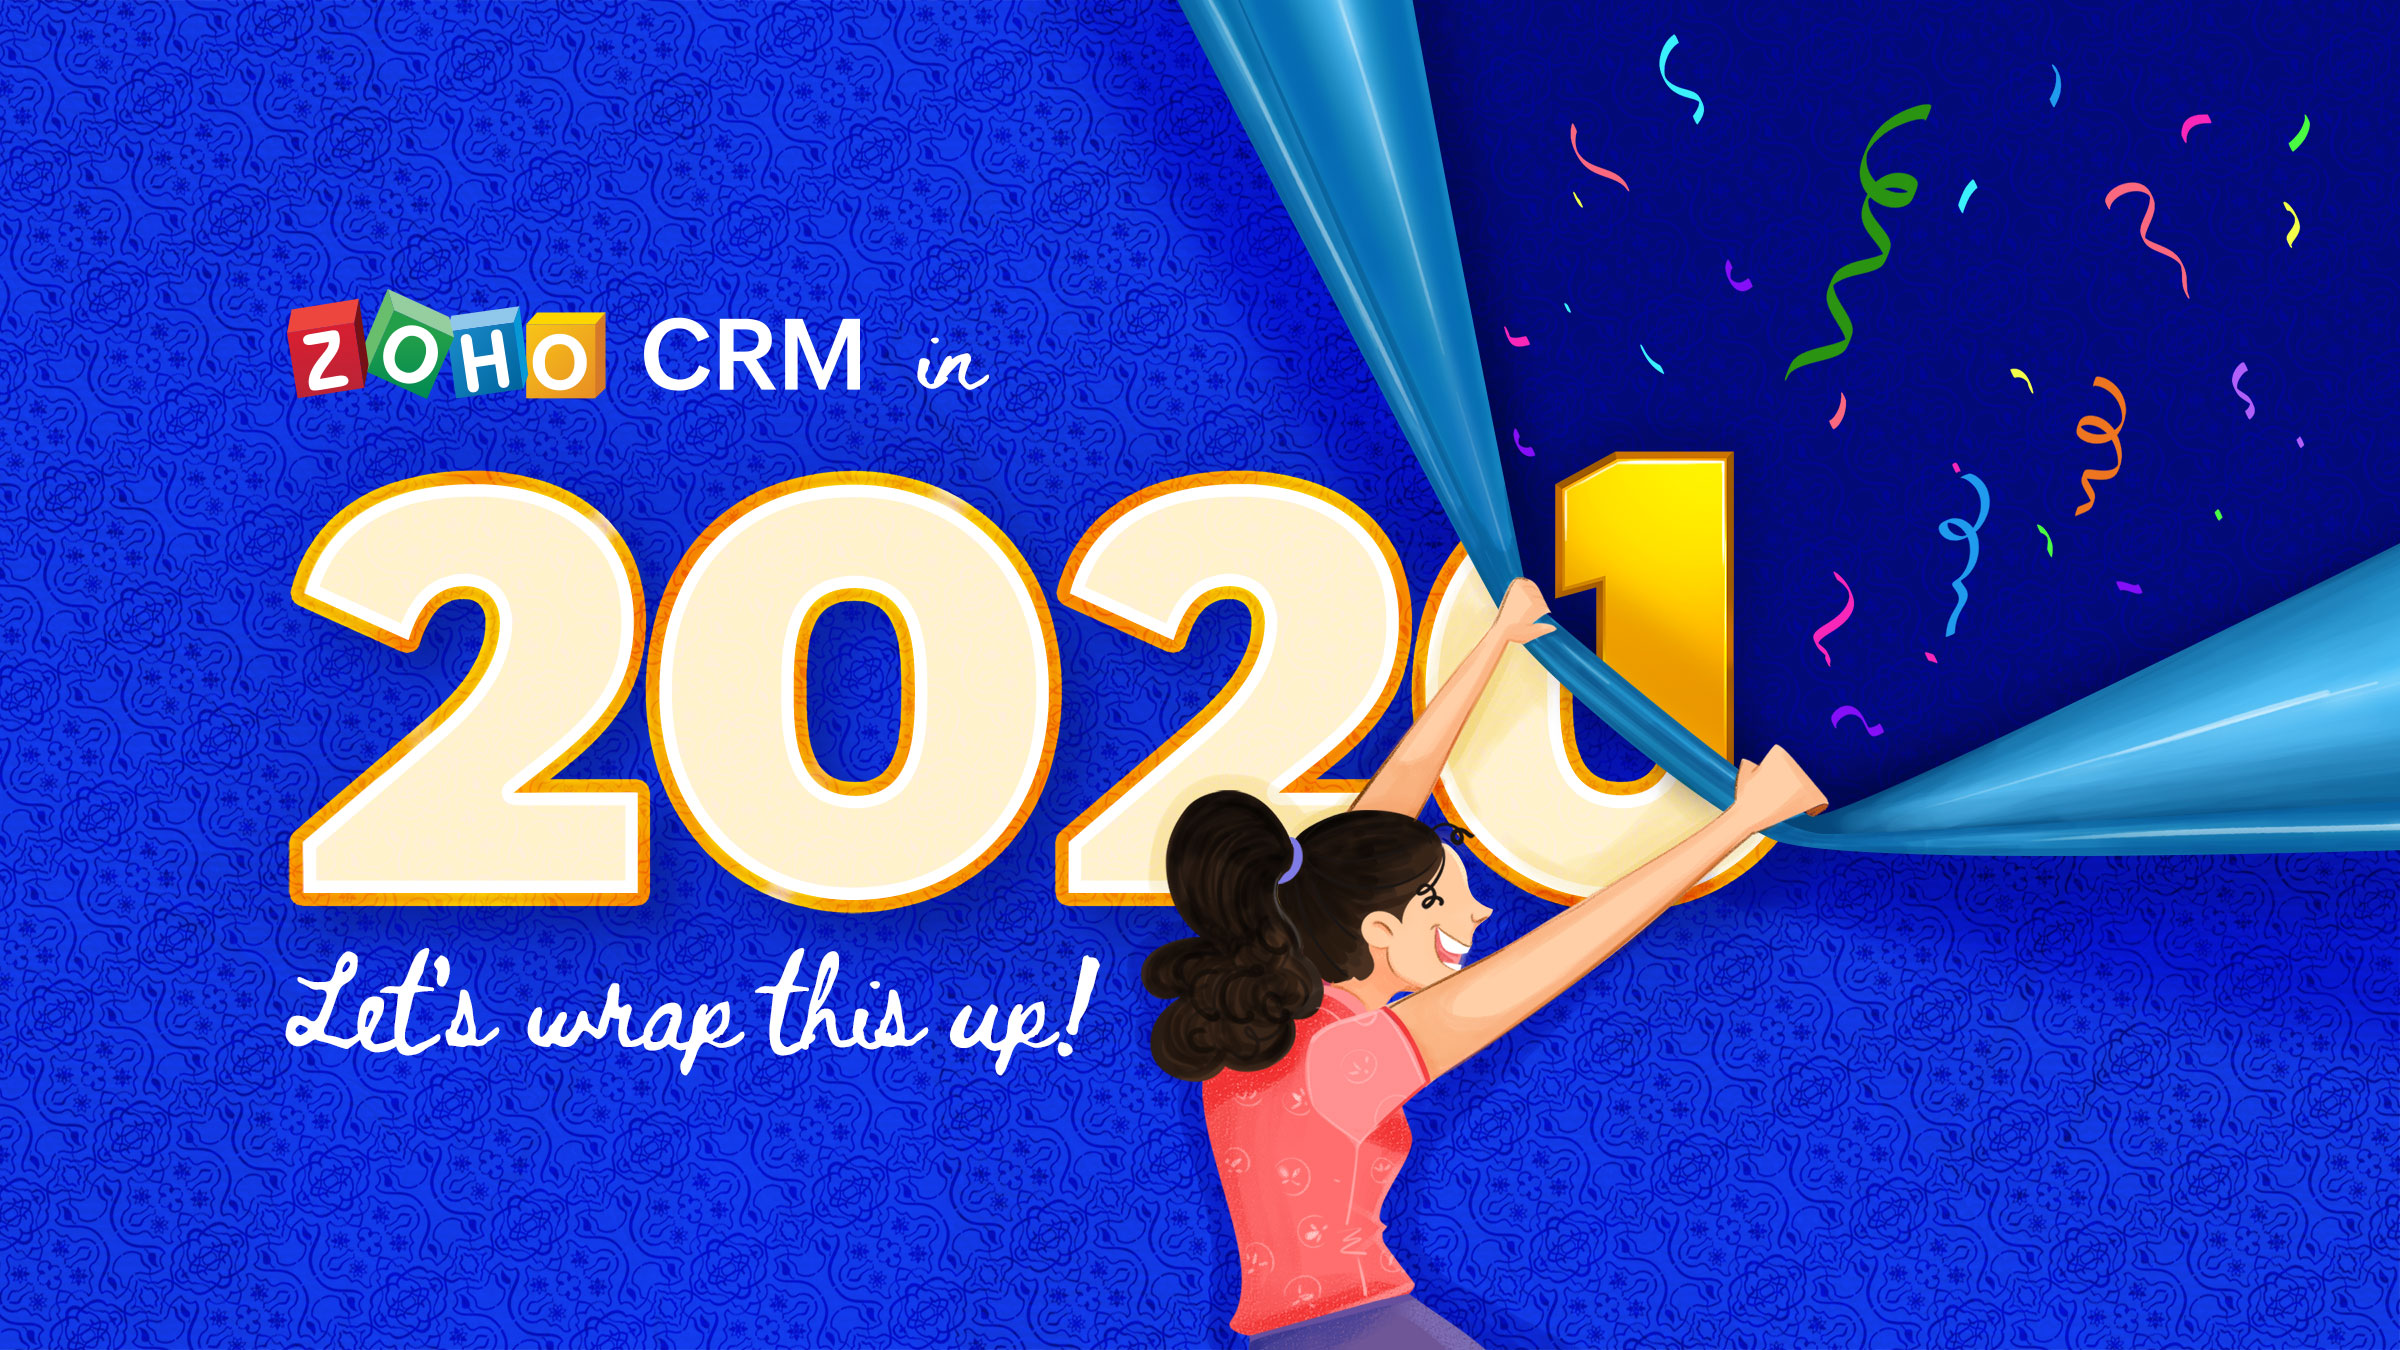 Zoho CRM in 2020 – A Year In Review